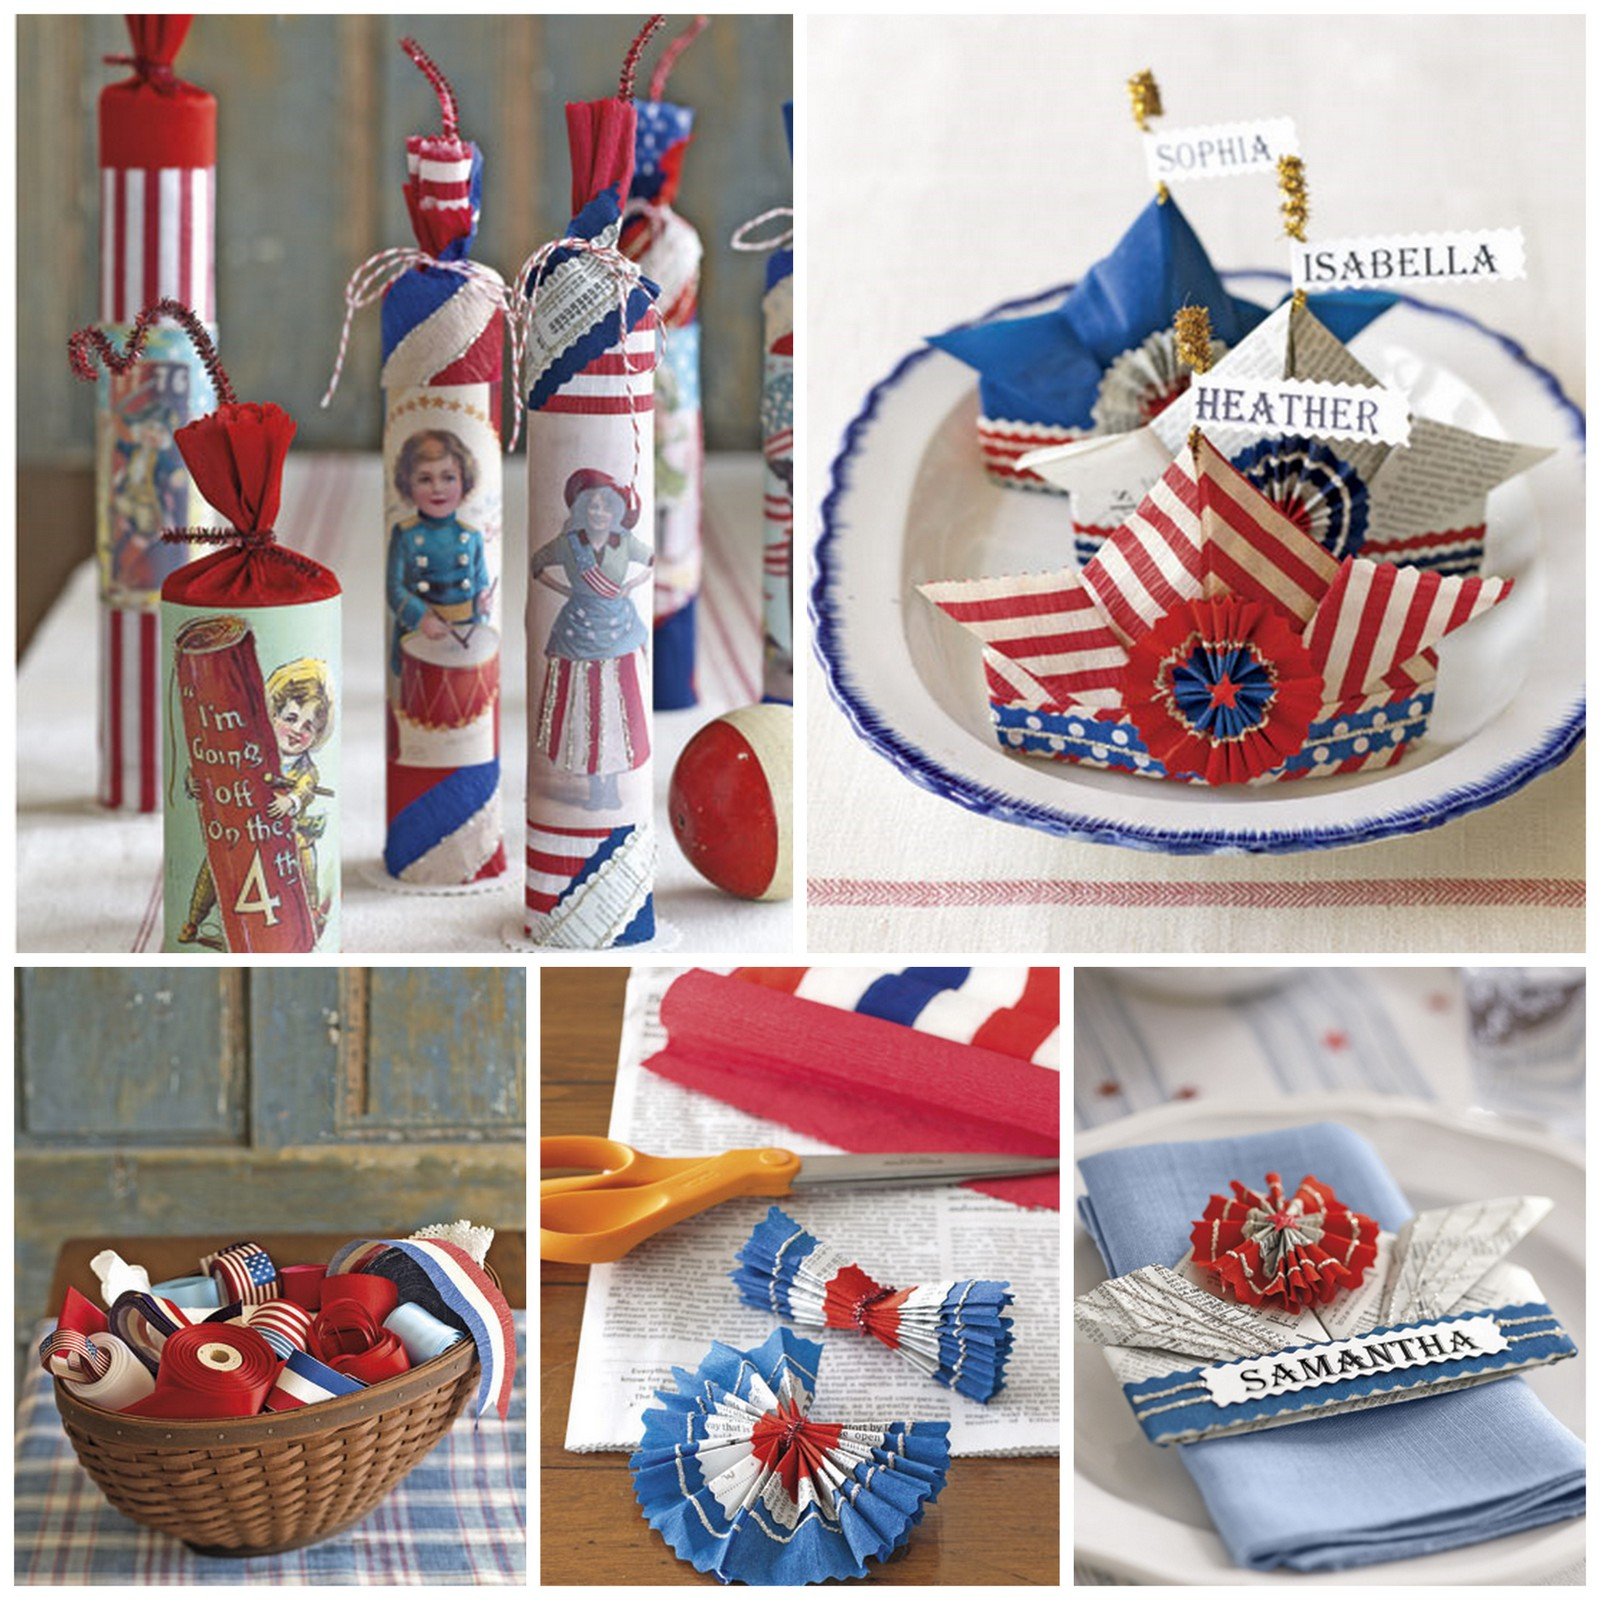 4Th Of July Homemade Decorations DIY